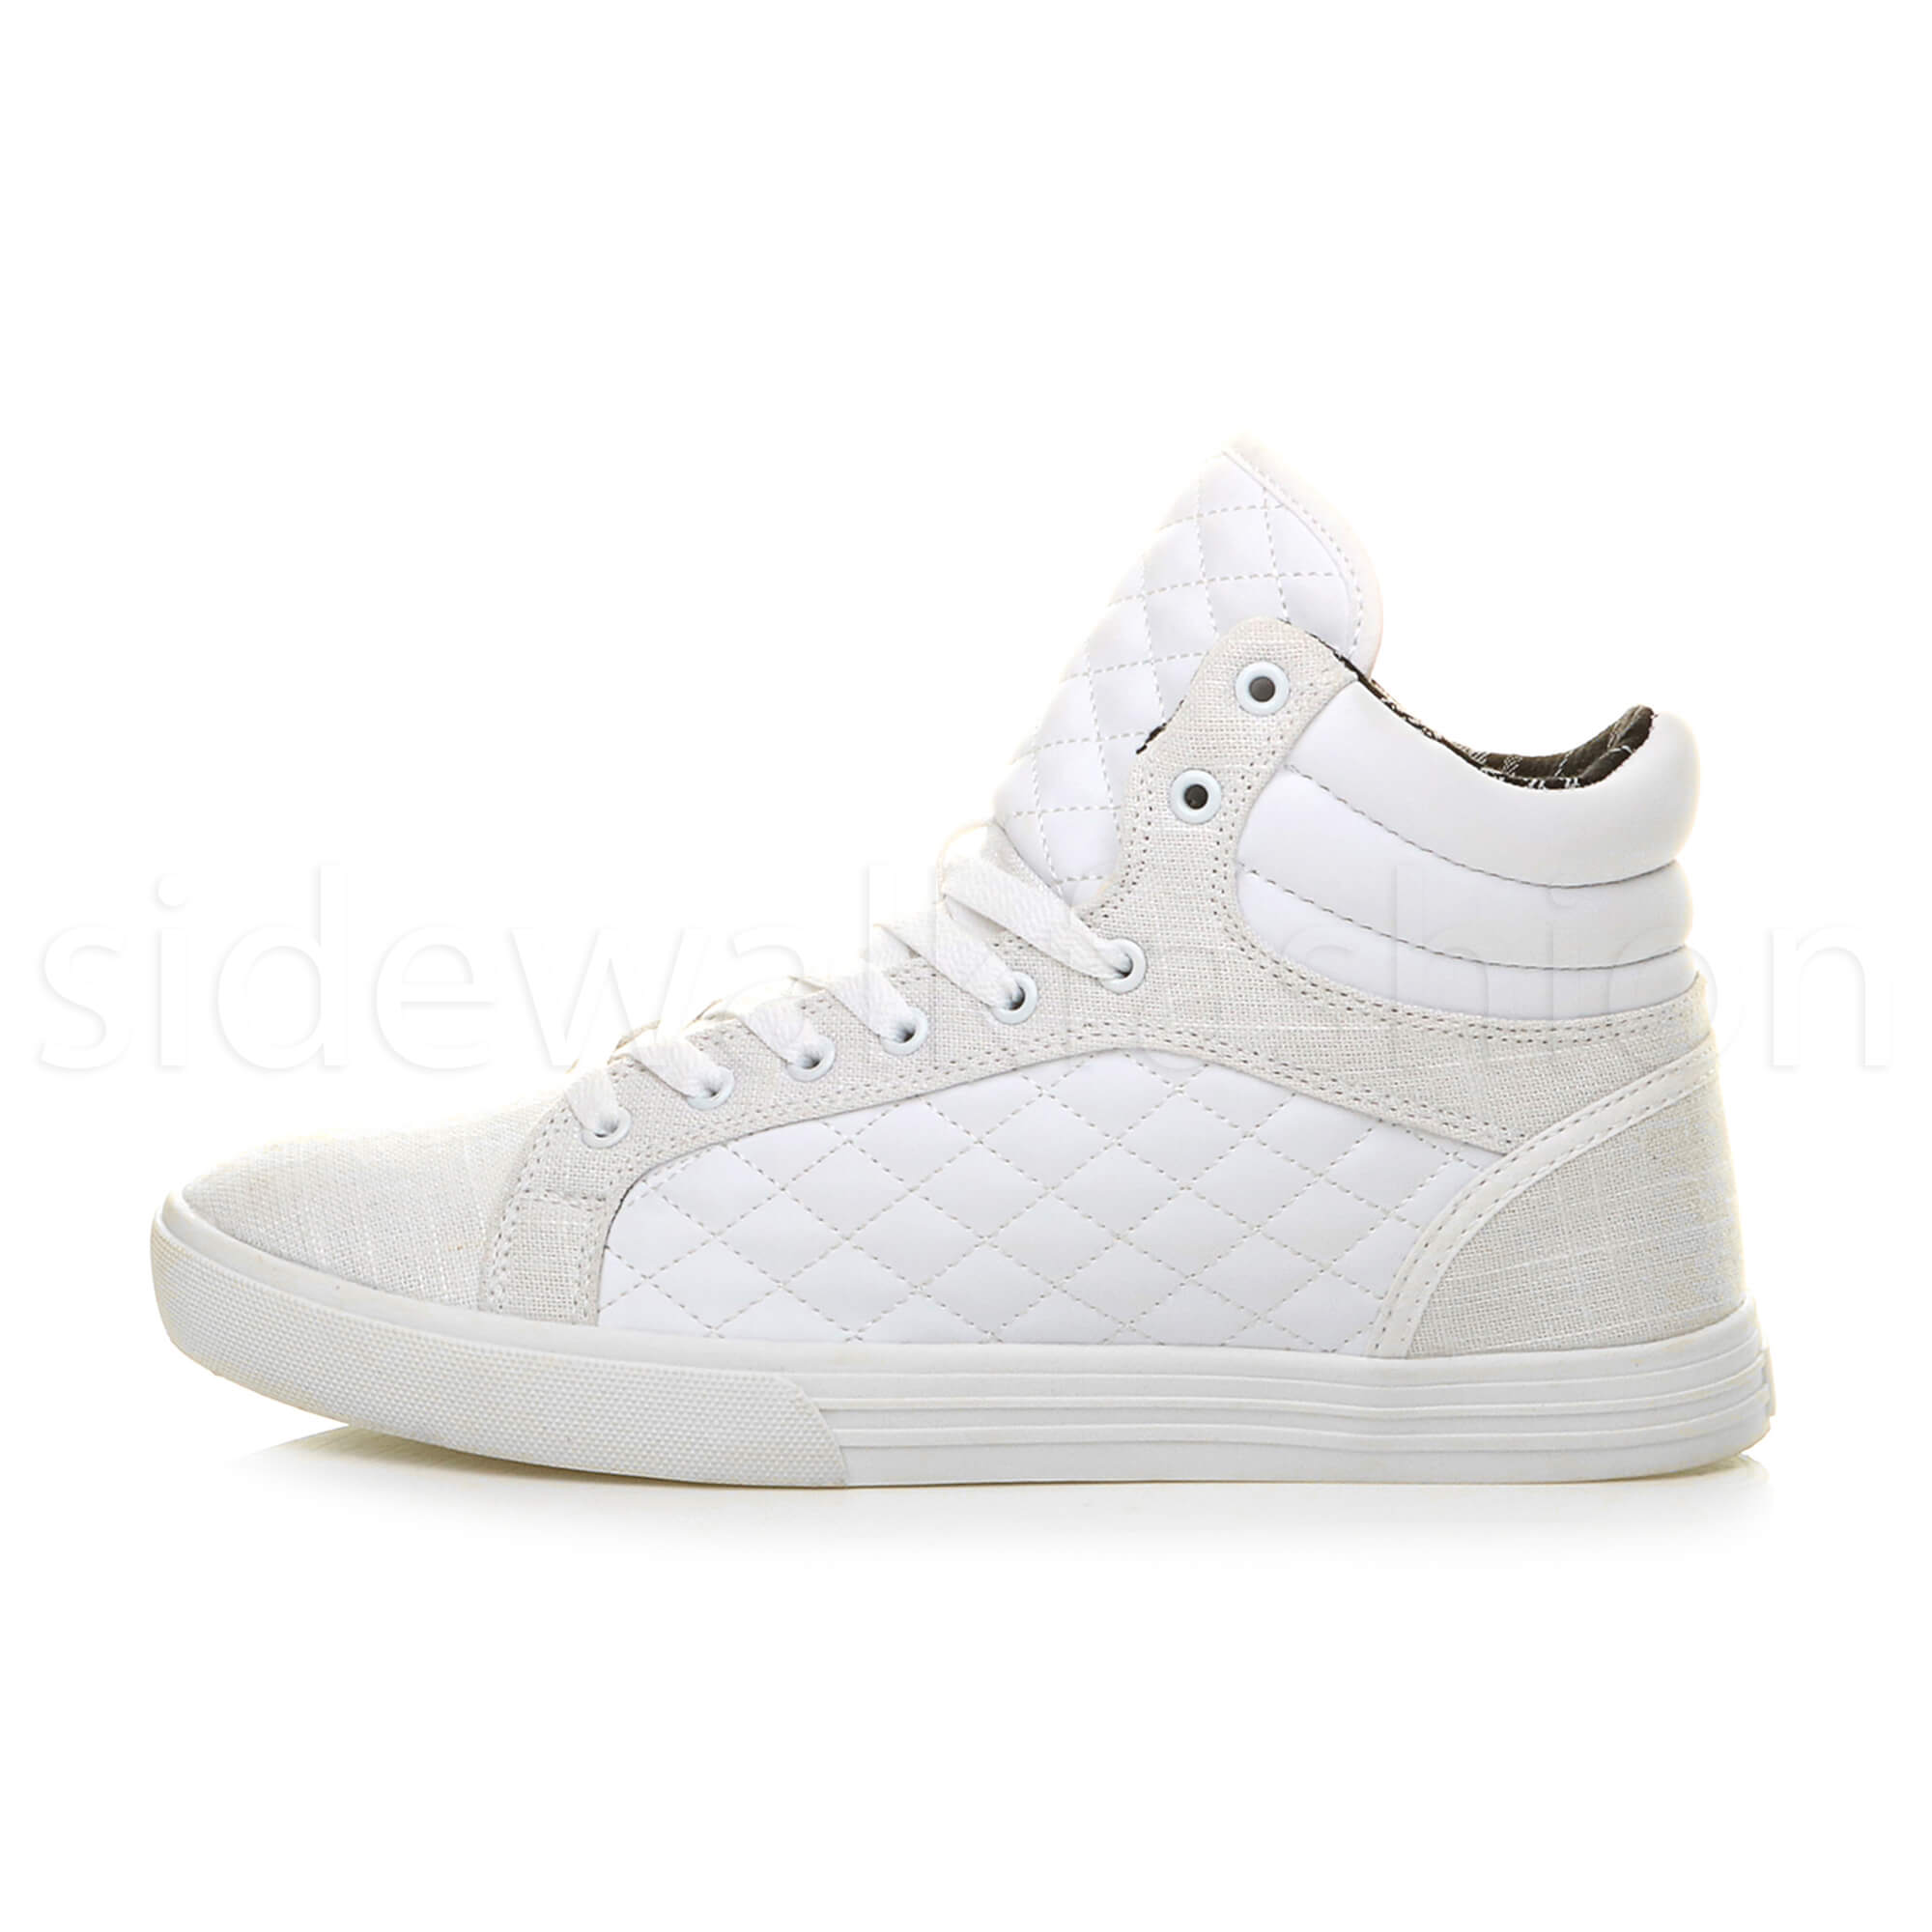 Mens-flat-lace-up-quilted-casual-hi-high-top-ankle-boots-trainers-sneakers-size thumbnail 31